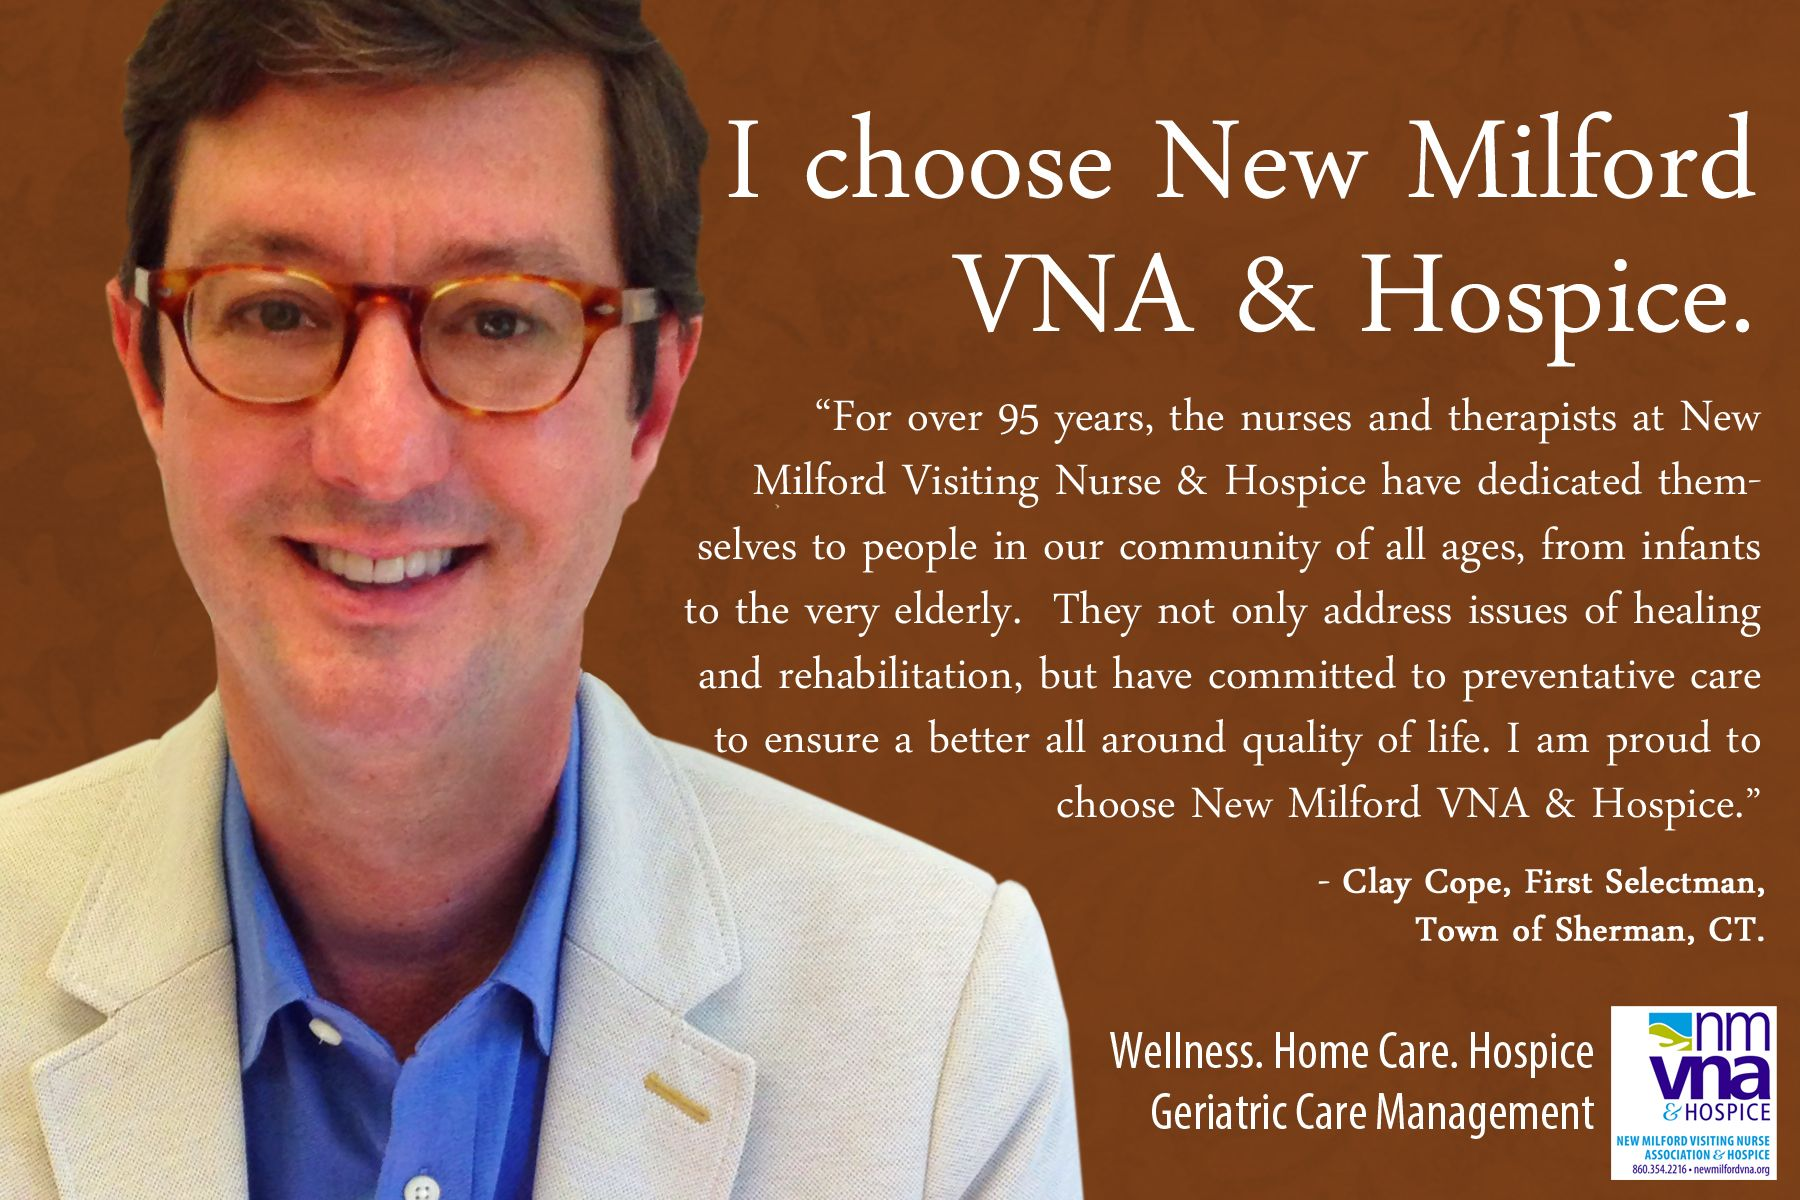 Pin on We choose New Milford VNA & Hospice and so can you!